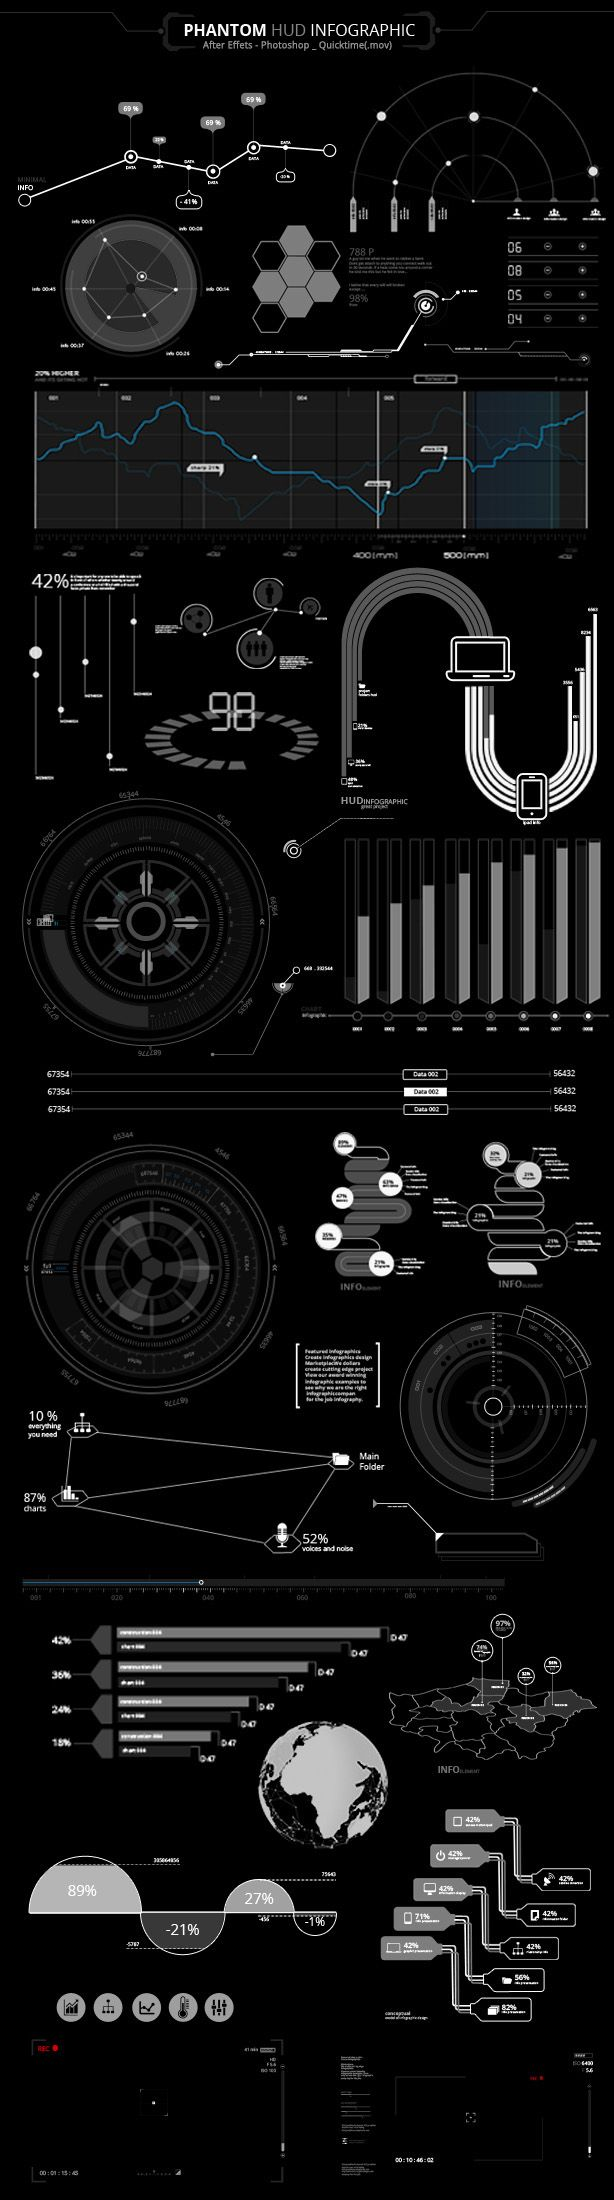 Phantom HUD Infographic